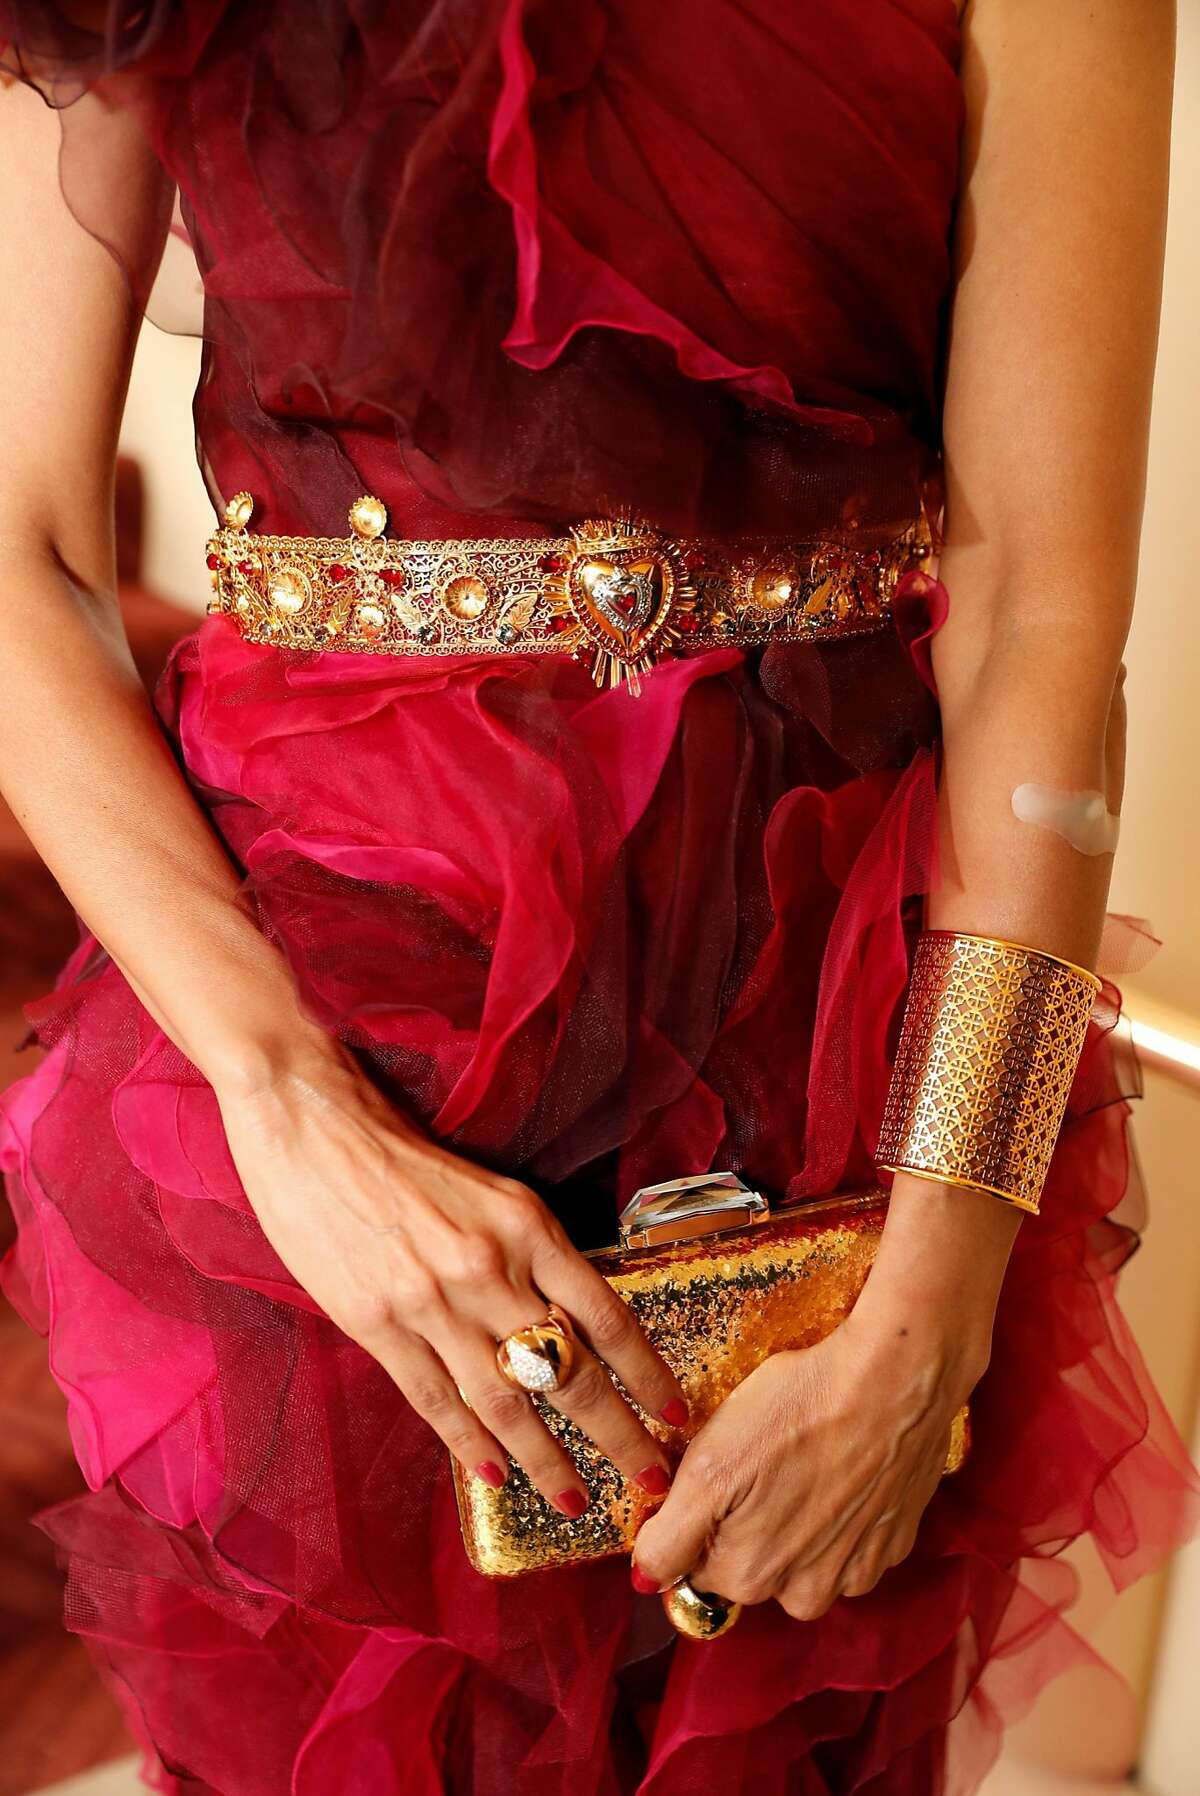 Komal Shah wearing Marchesa and a Dolce & Gabbana belt before Symphony Gala at Davies Symphony Hall in San Francisco, Calif. on Wednesday, September 5, 2018.